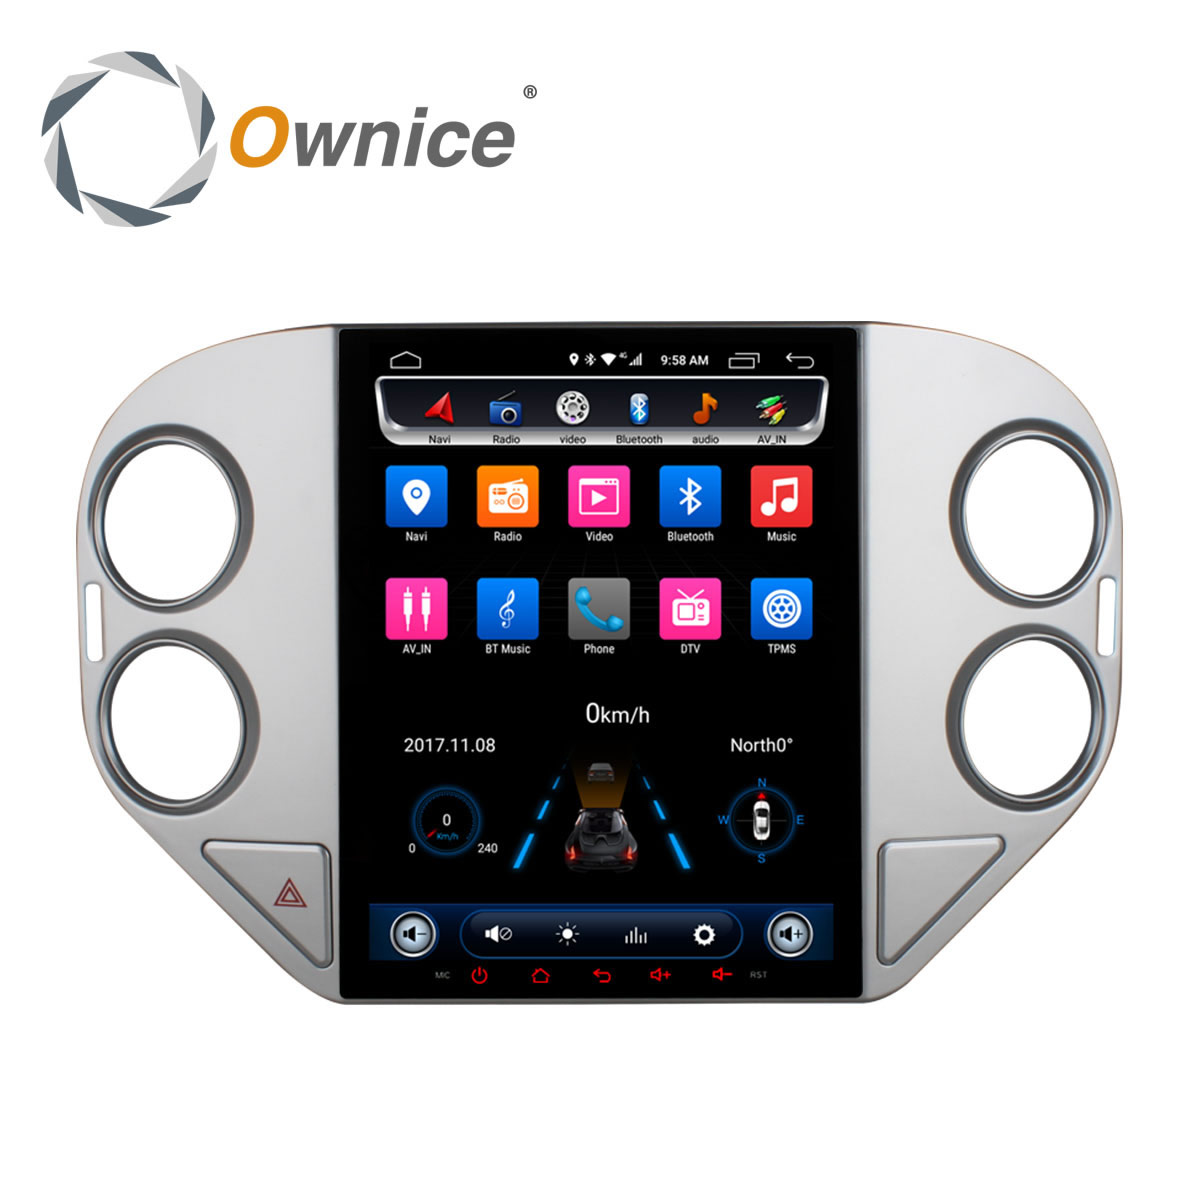 Ownice Vertical Octa Core 2G RAM Android 6.0 Car DVD GPS Navi Player Radio Stereo for VW Tiguan 2010 2011-2016 32G ROM 2.5D IPS ownice c500 4g sim lte octa 8 core android 6 0 for kia ceed 2013 2015 car dvd player gps navi radio wifi 4g bt 2gb ram 32g rom